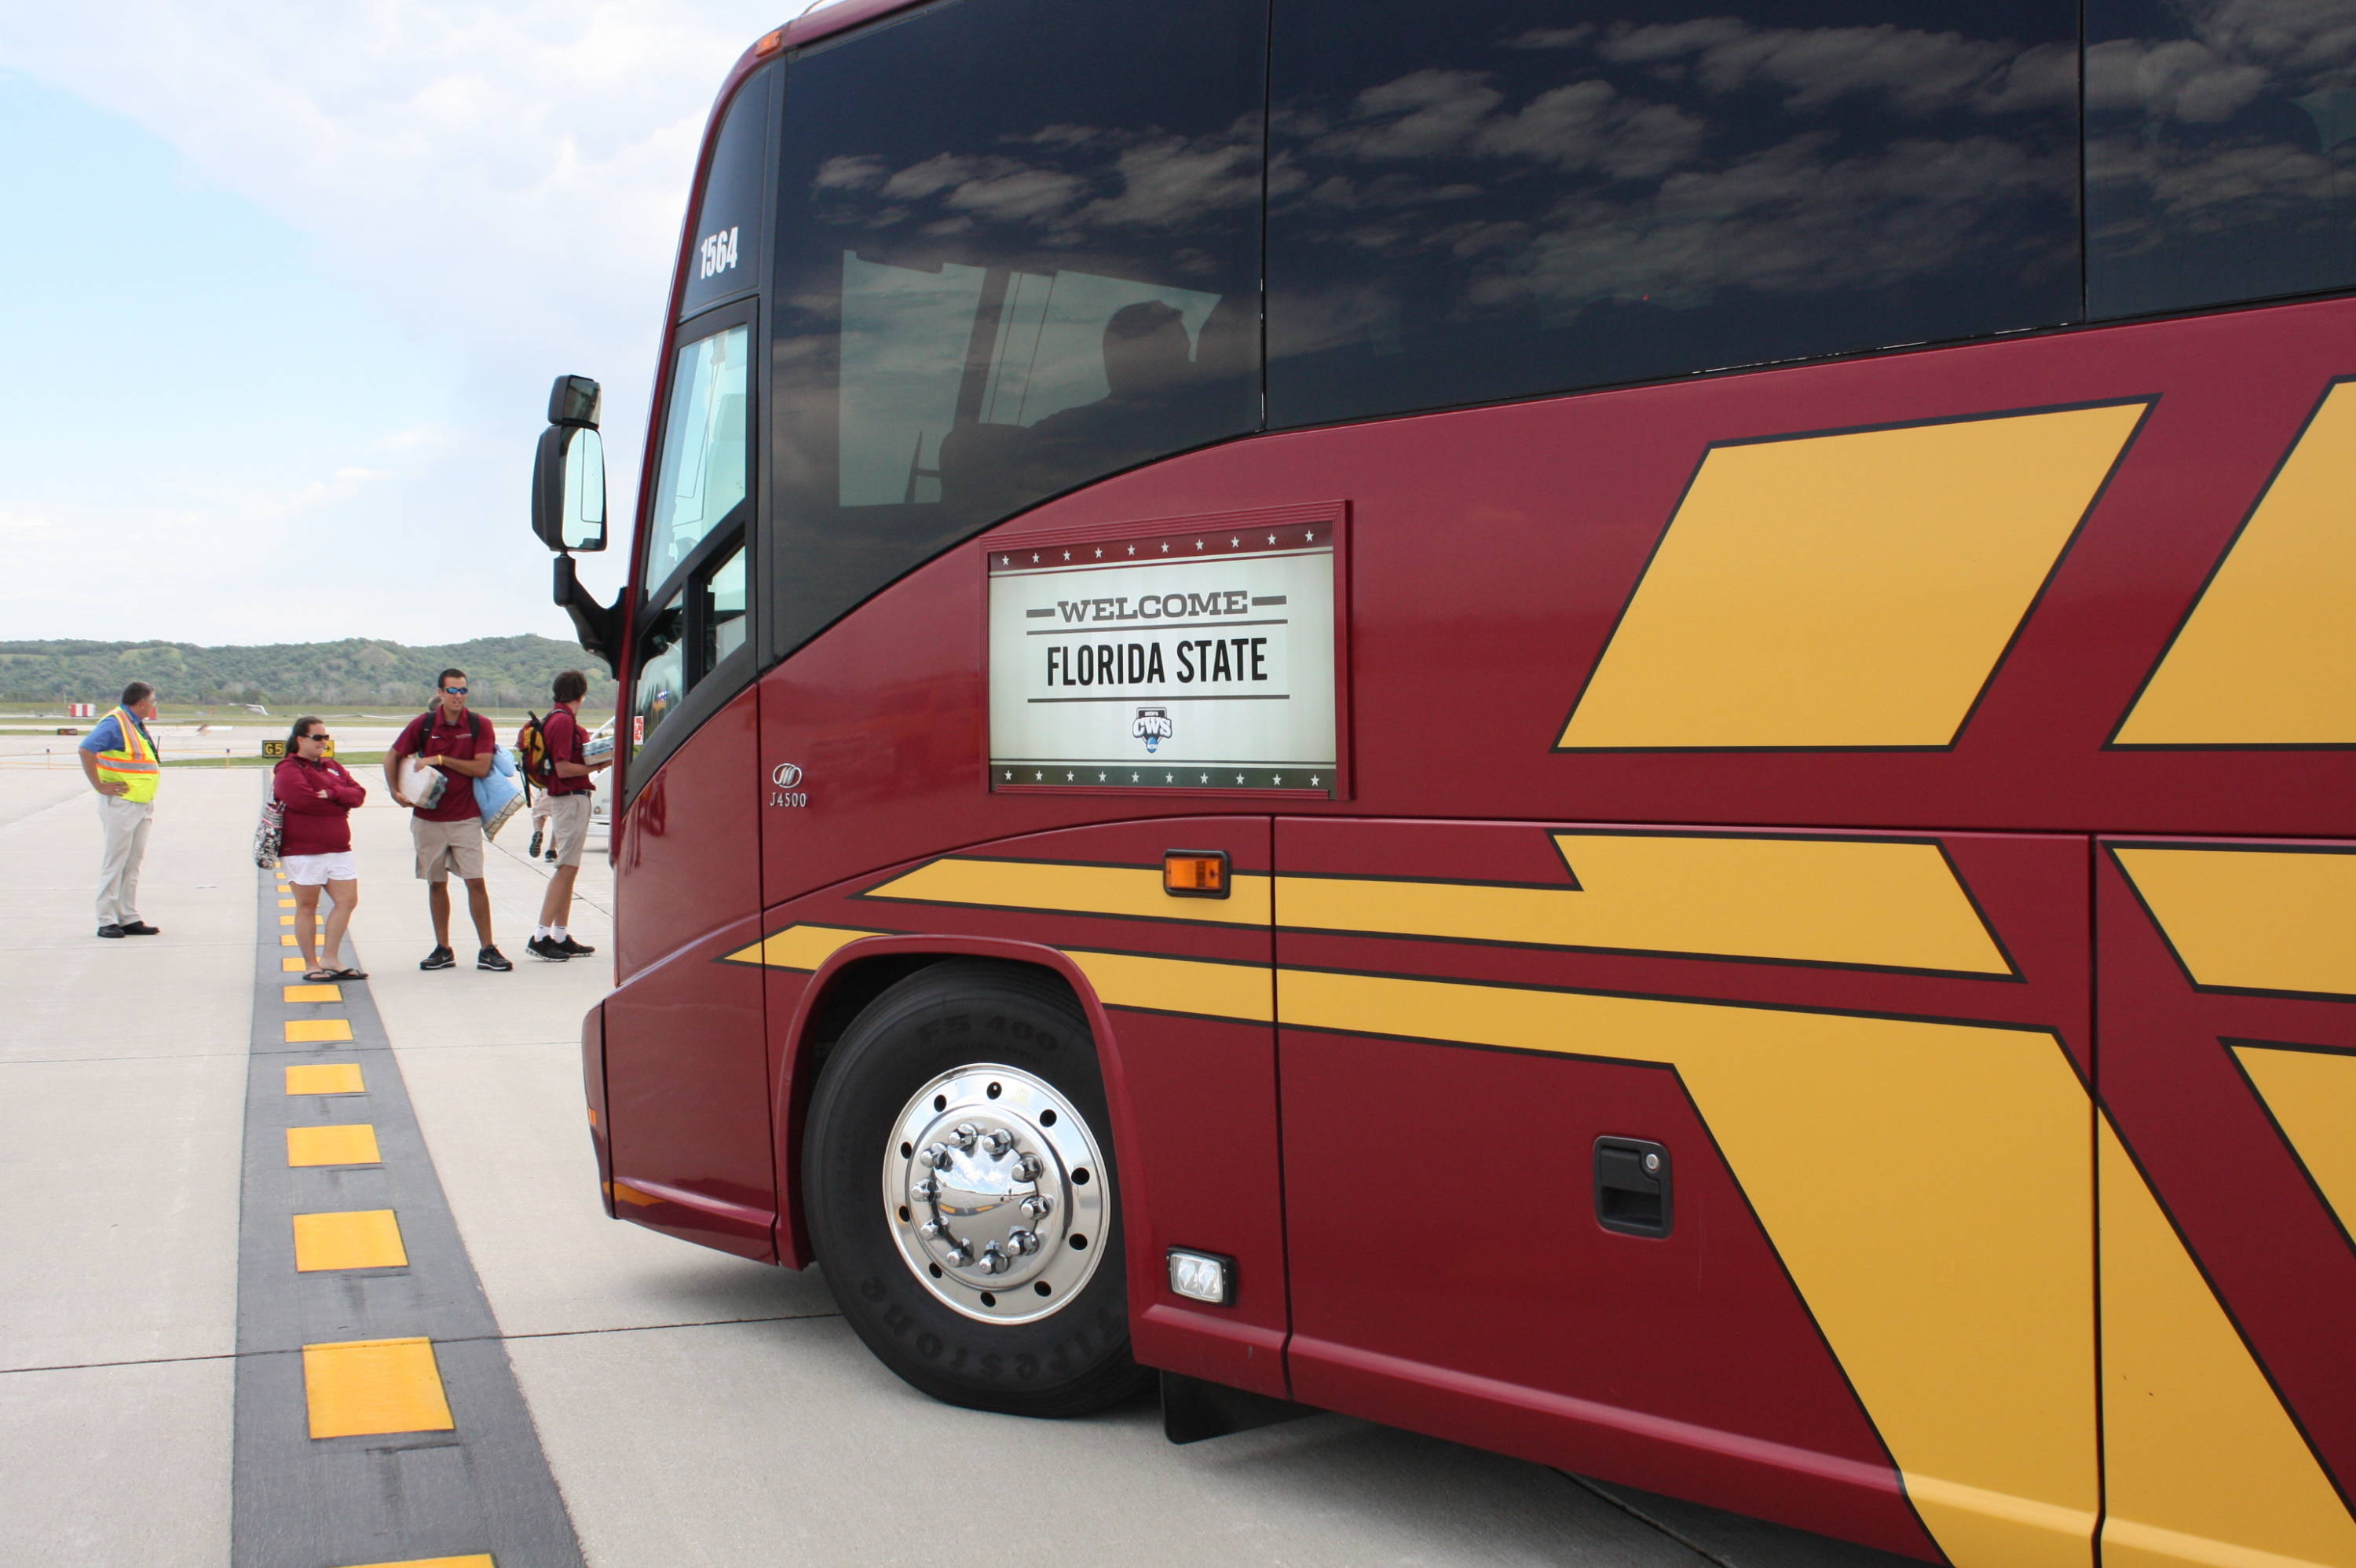 That there is a good lookin bus!